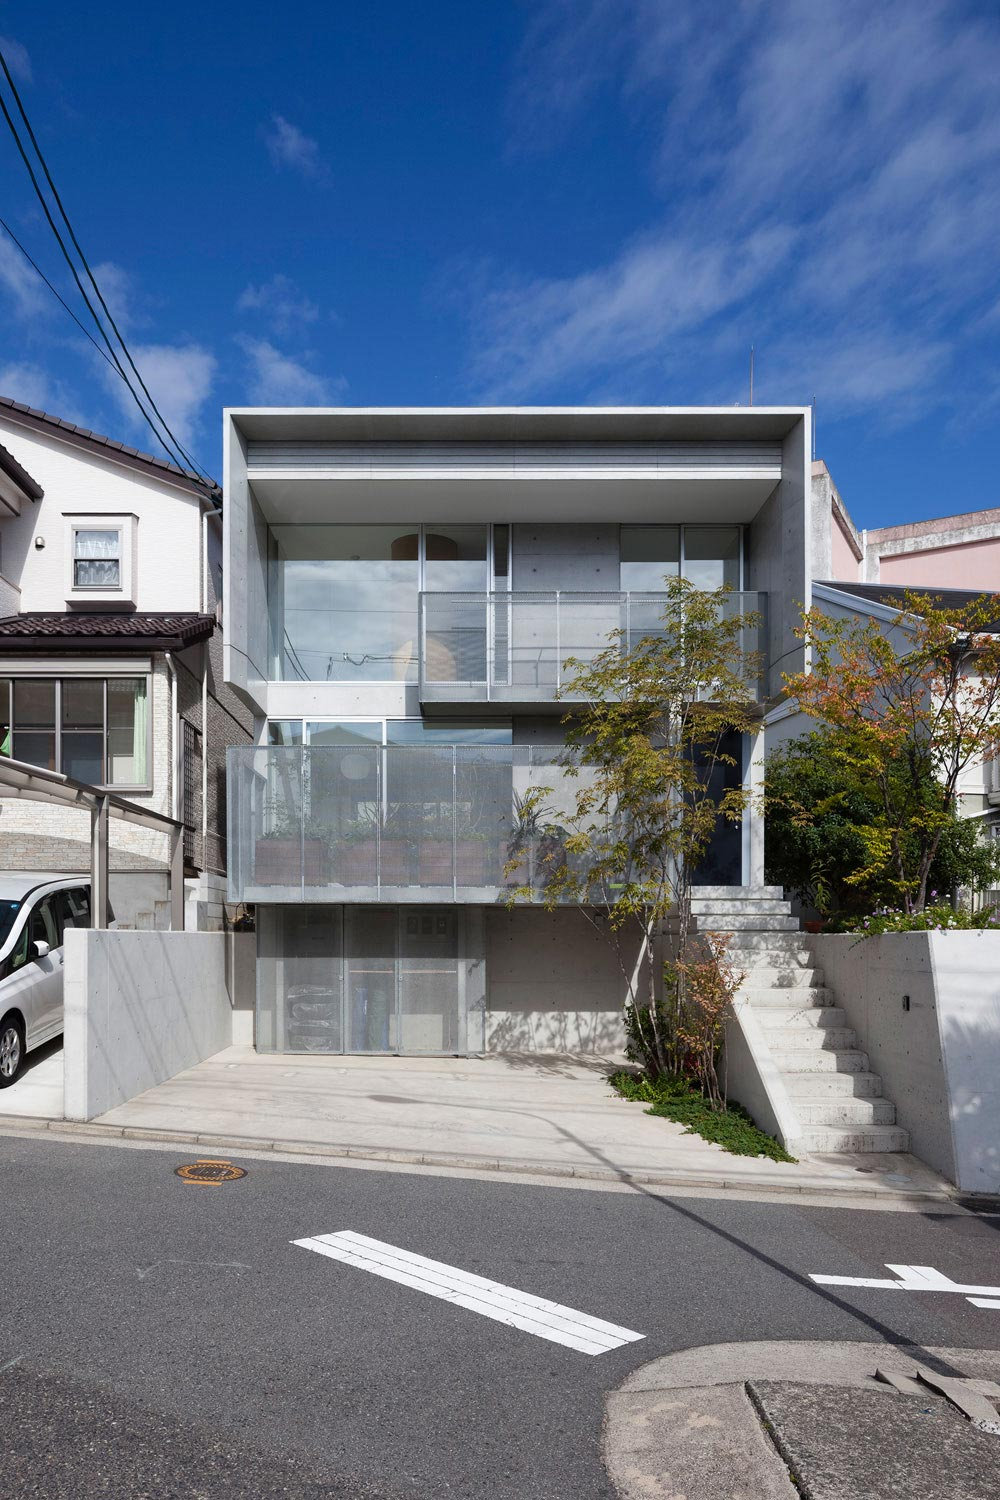 House in Midorigaoka: a triple tiered, nine-by-twenty two meters plot of land with a tuck under garage